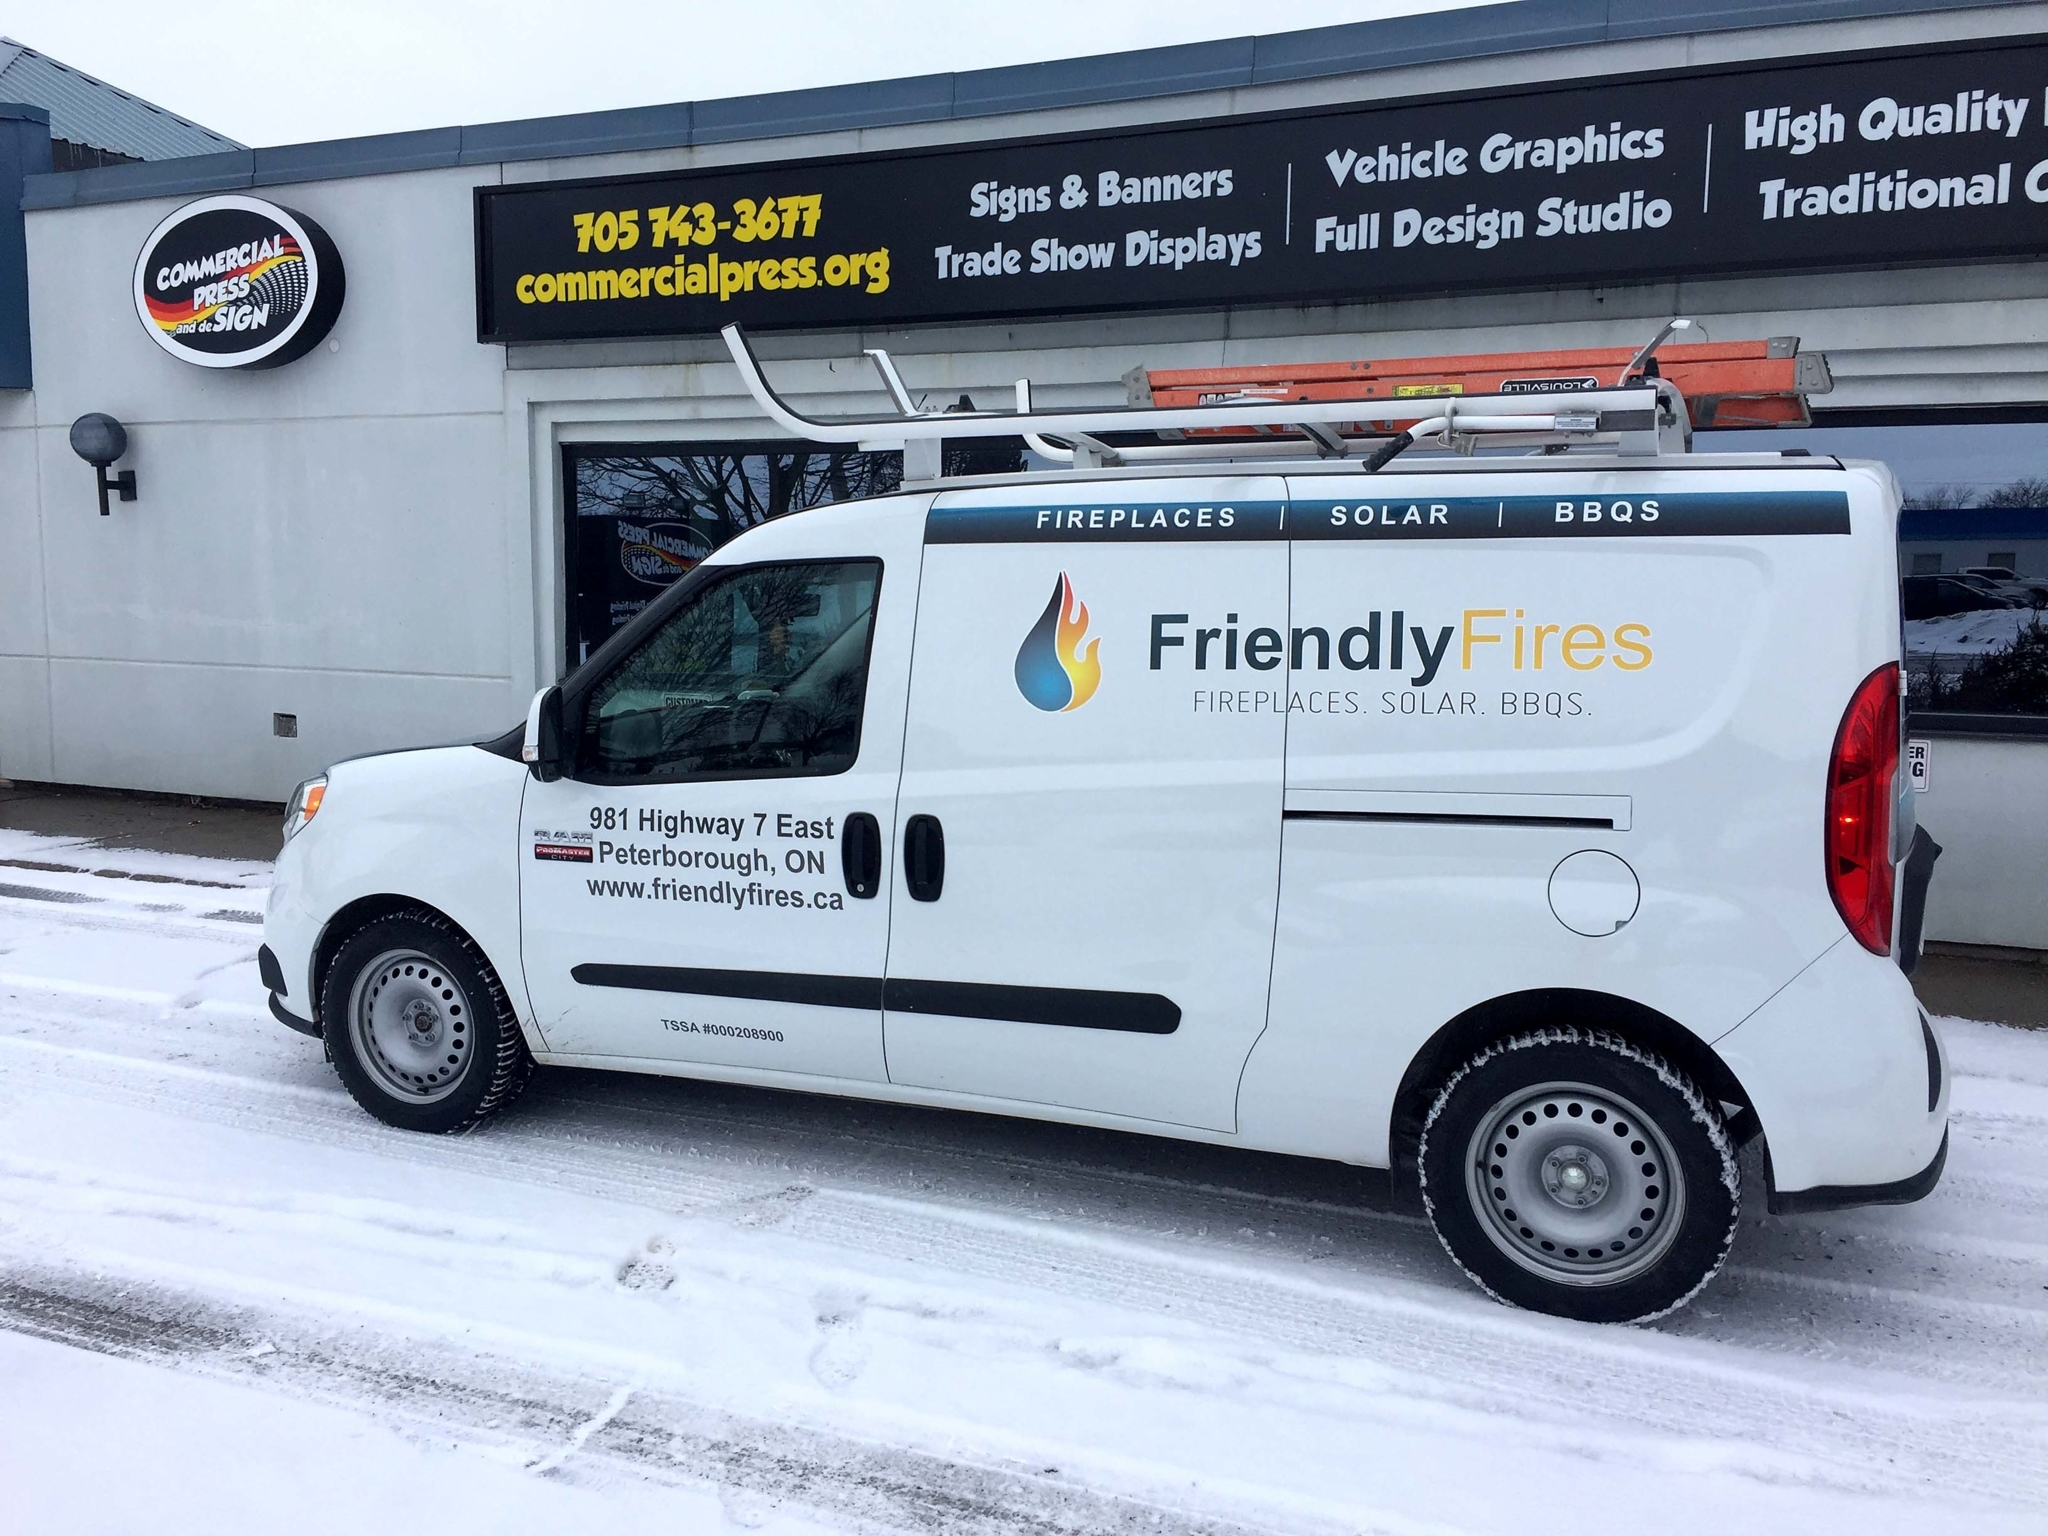 Commercial Press & Design in Peterborough: Graphics for a Dodge ProMaster Van. Produced and installed by Commercial Press and deSign.